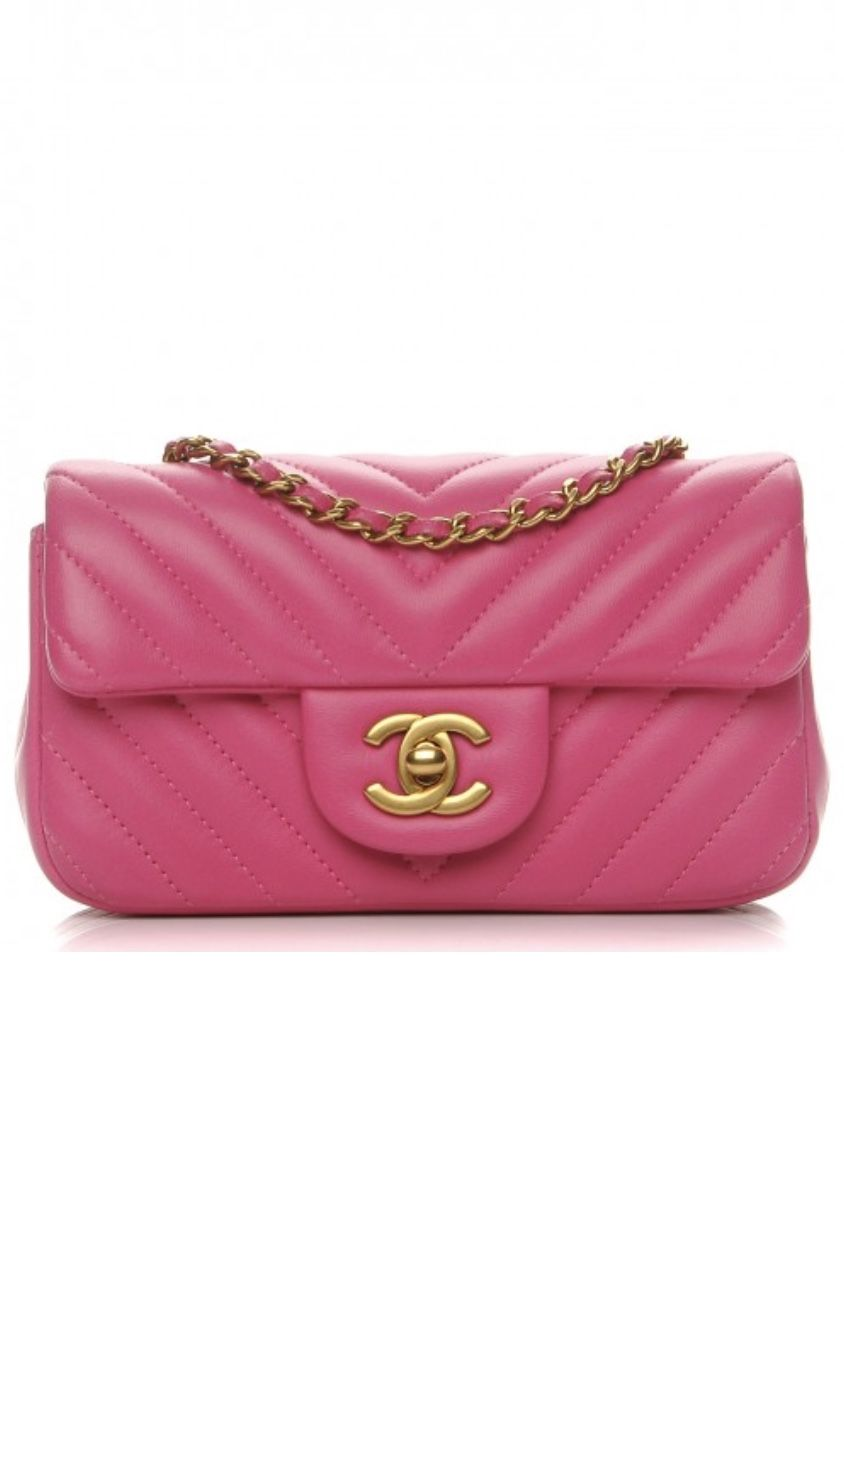 Chanel Lambskin Chevron Quilted Pink Extra Mini Flap Chanel Flap Chanel Shoulder Bag